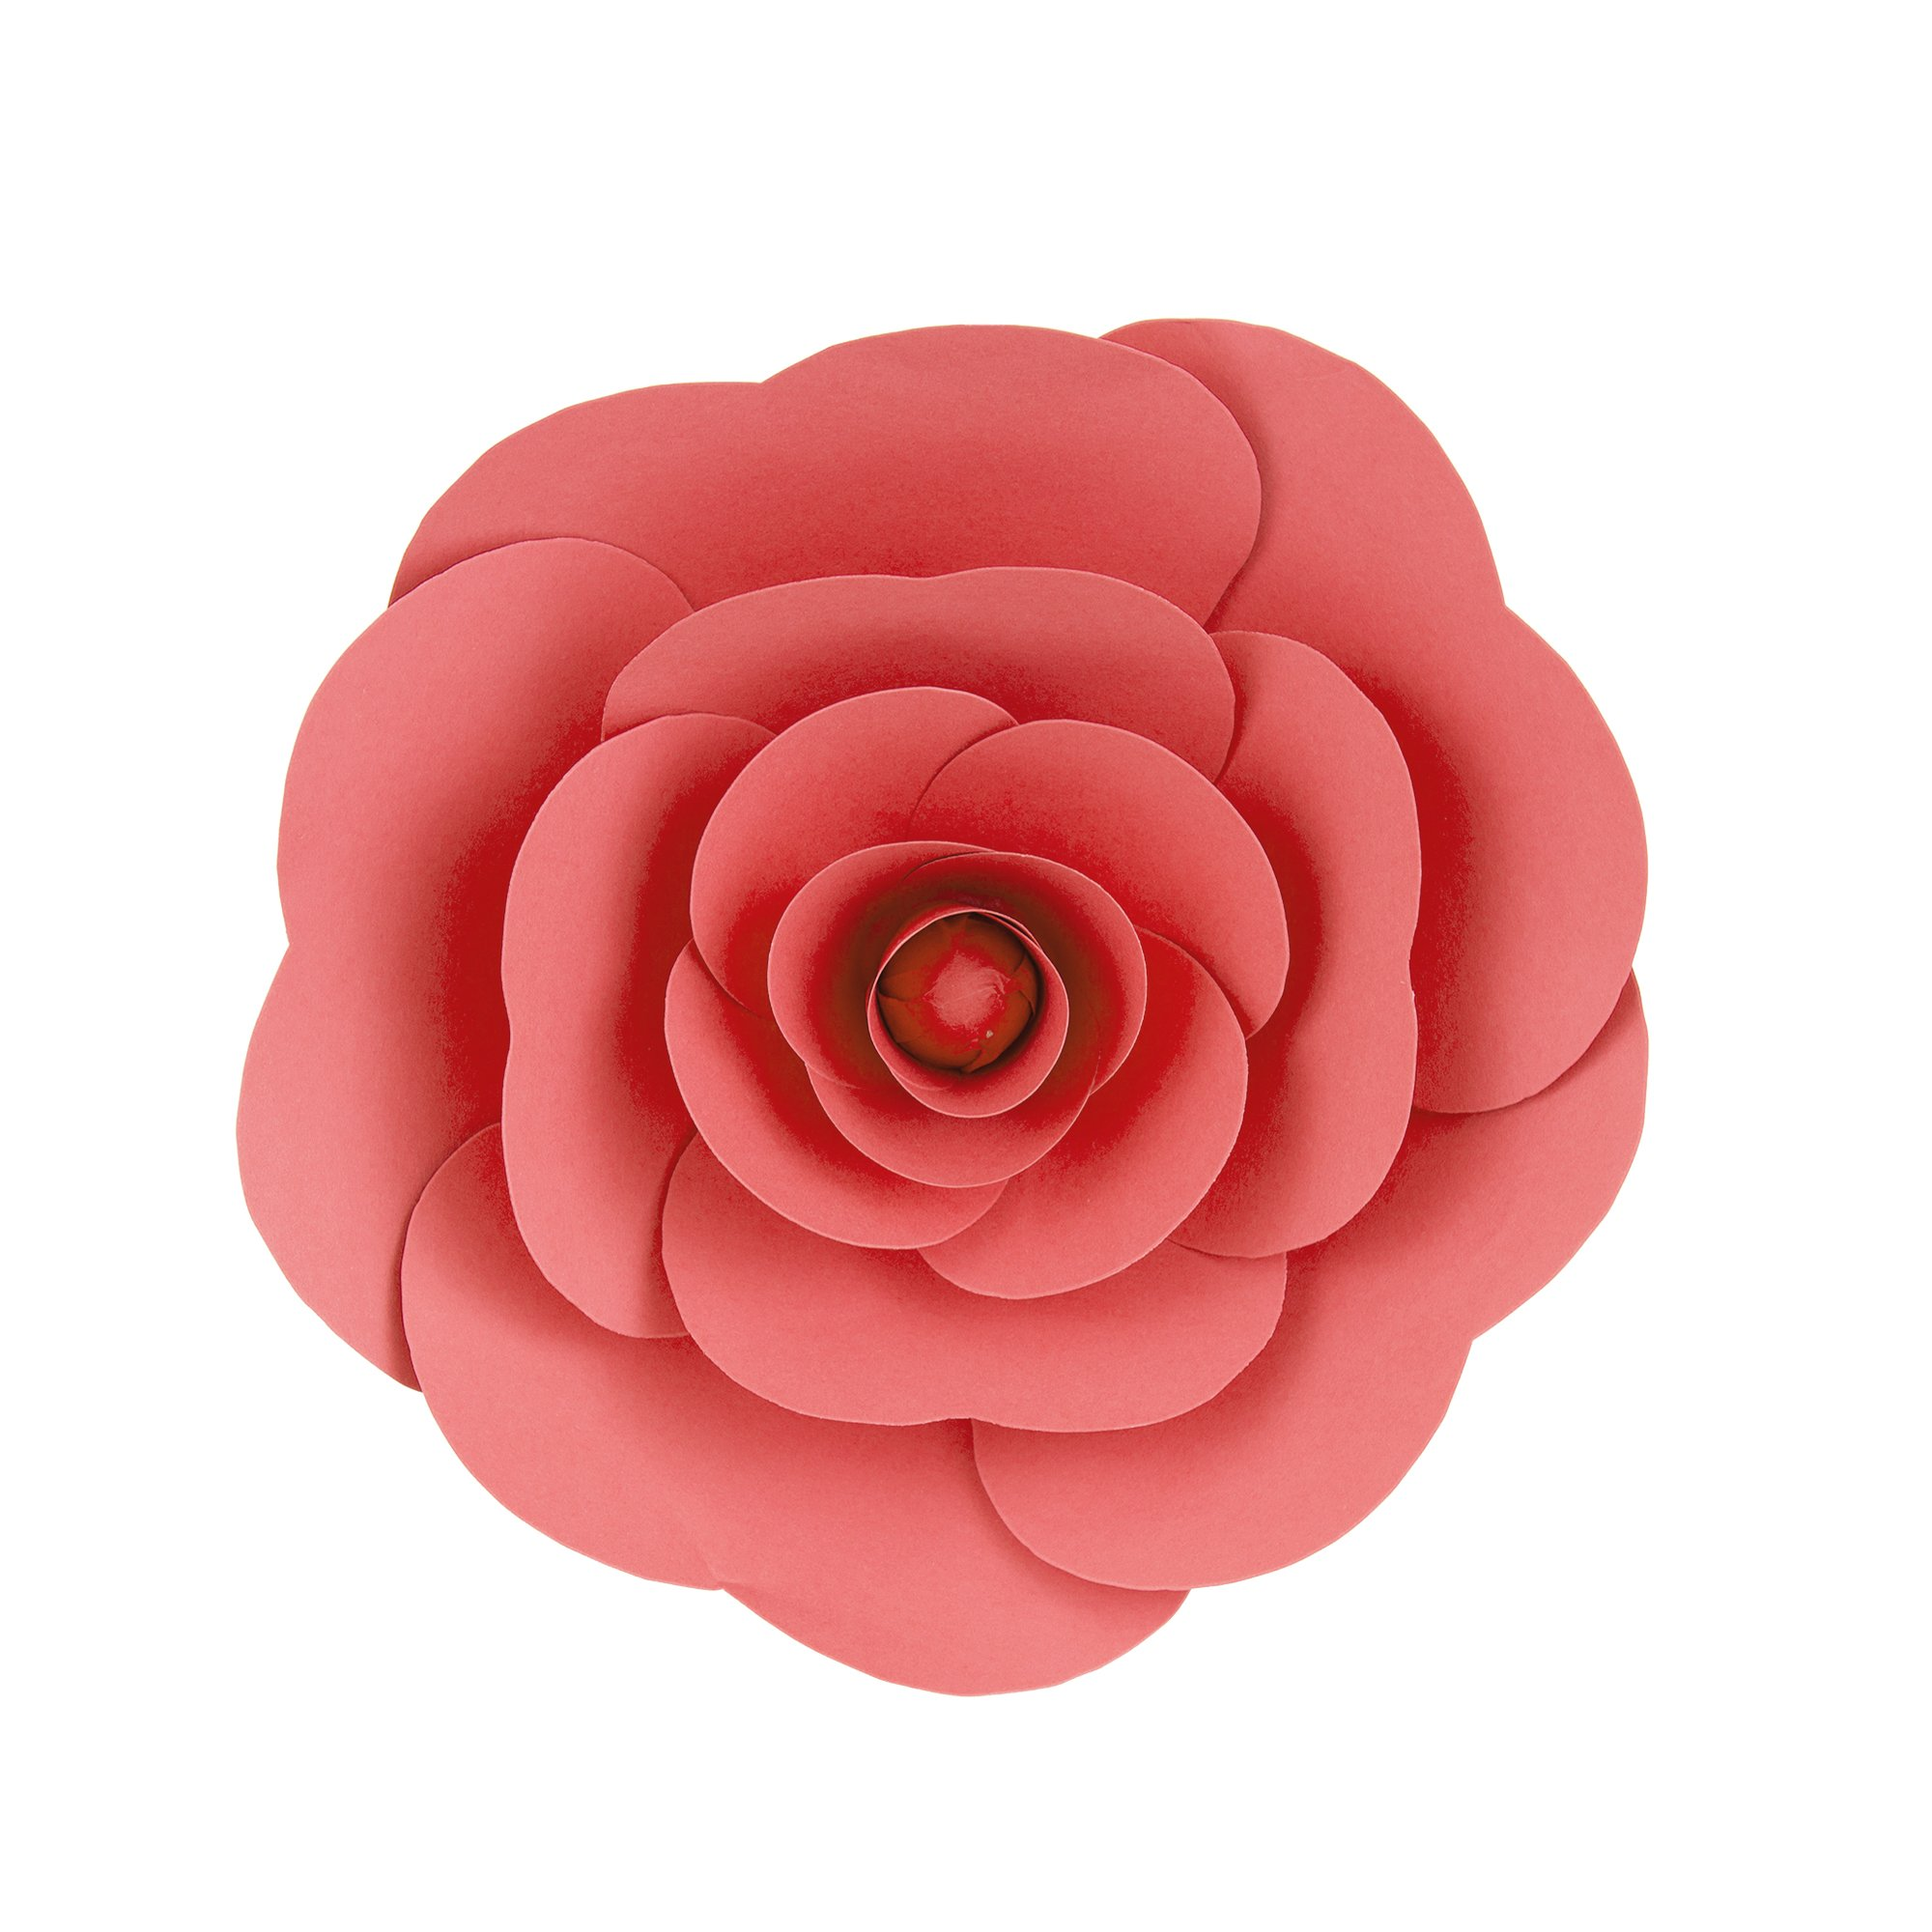 Mega Crafts 12'' Handmade Paper Flower in Coral | for Home Décor, Wedding Bouquets & Receptions, Event Flower Planning, Table Centerpieces, Backdrop Wall Decoration, Garlands & Parties